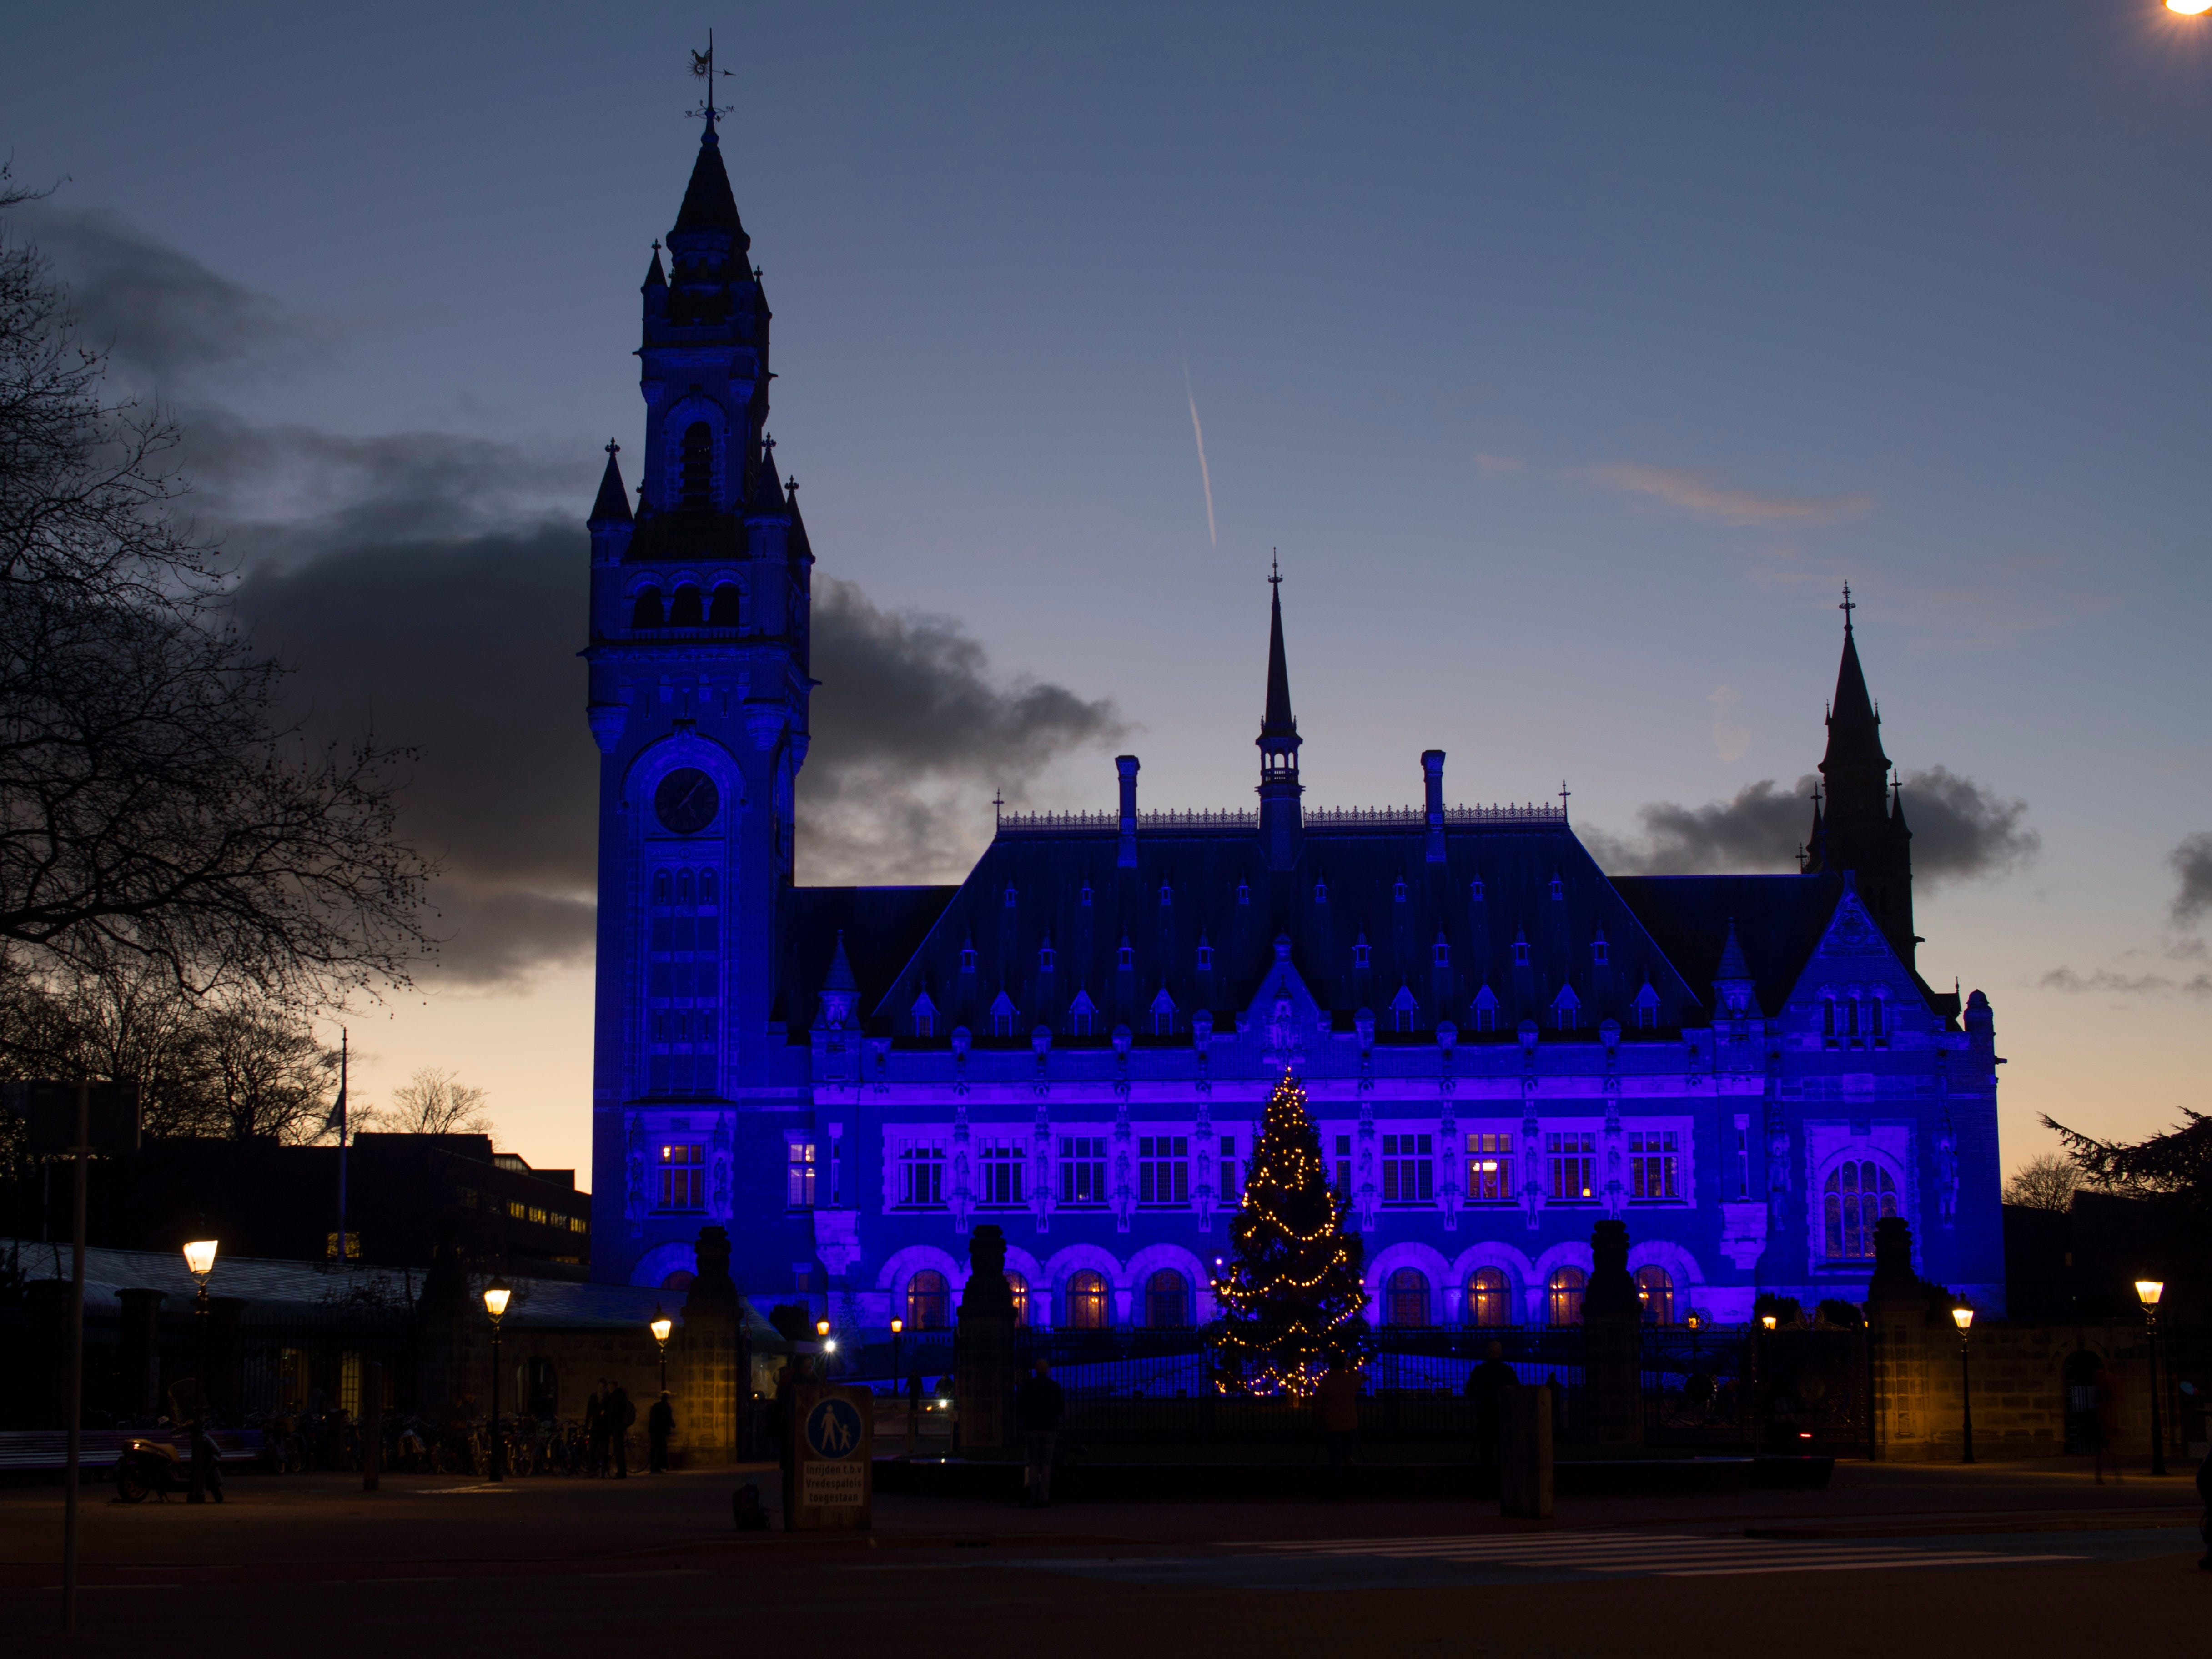 The Peace Palace, which houses the International Court of Justice, (ICJ), is illuminated in blue light in The Hague, Netherlands, Monday, Dec. 10, 2018, in support of the global campaign of Human Rights Watch which draws attention to human rights and human rights violations worldwide. Thirty landmarks across the globe will shine bright blue on December 10, 2018, to celebrate Human Rights Day and the 70th anniversary of the Universal Declaration of Human Rights.